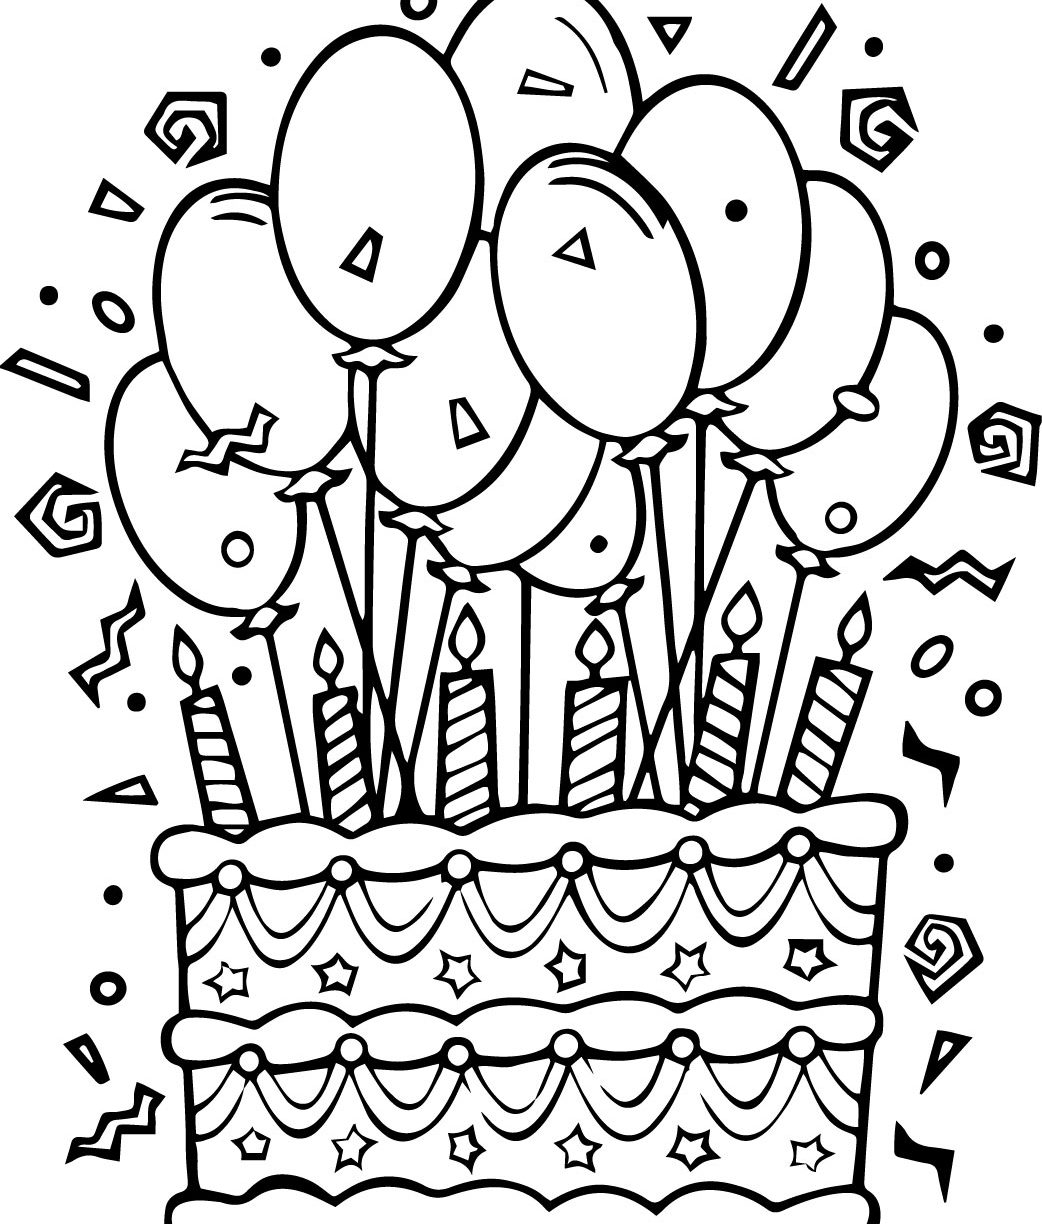 1042x1224 Epic Cake Coloring Pages On Coloring Books With Cake Coloring